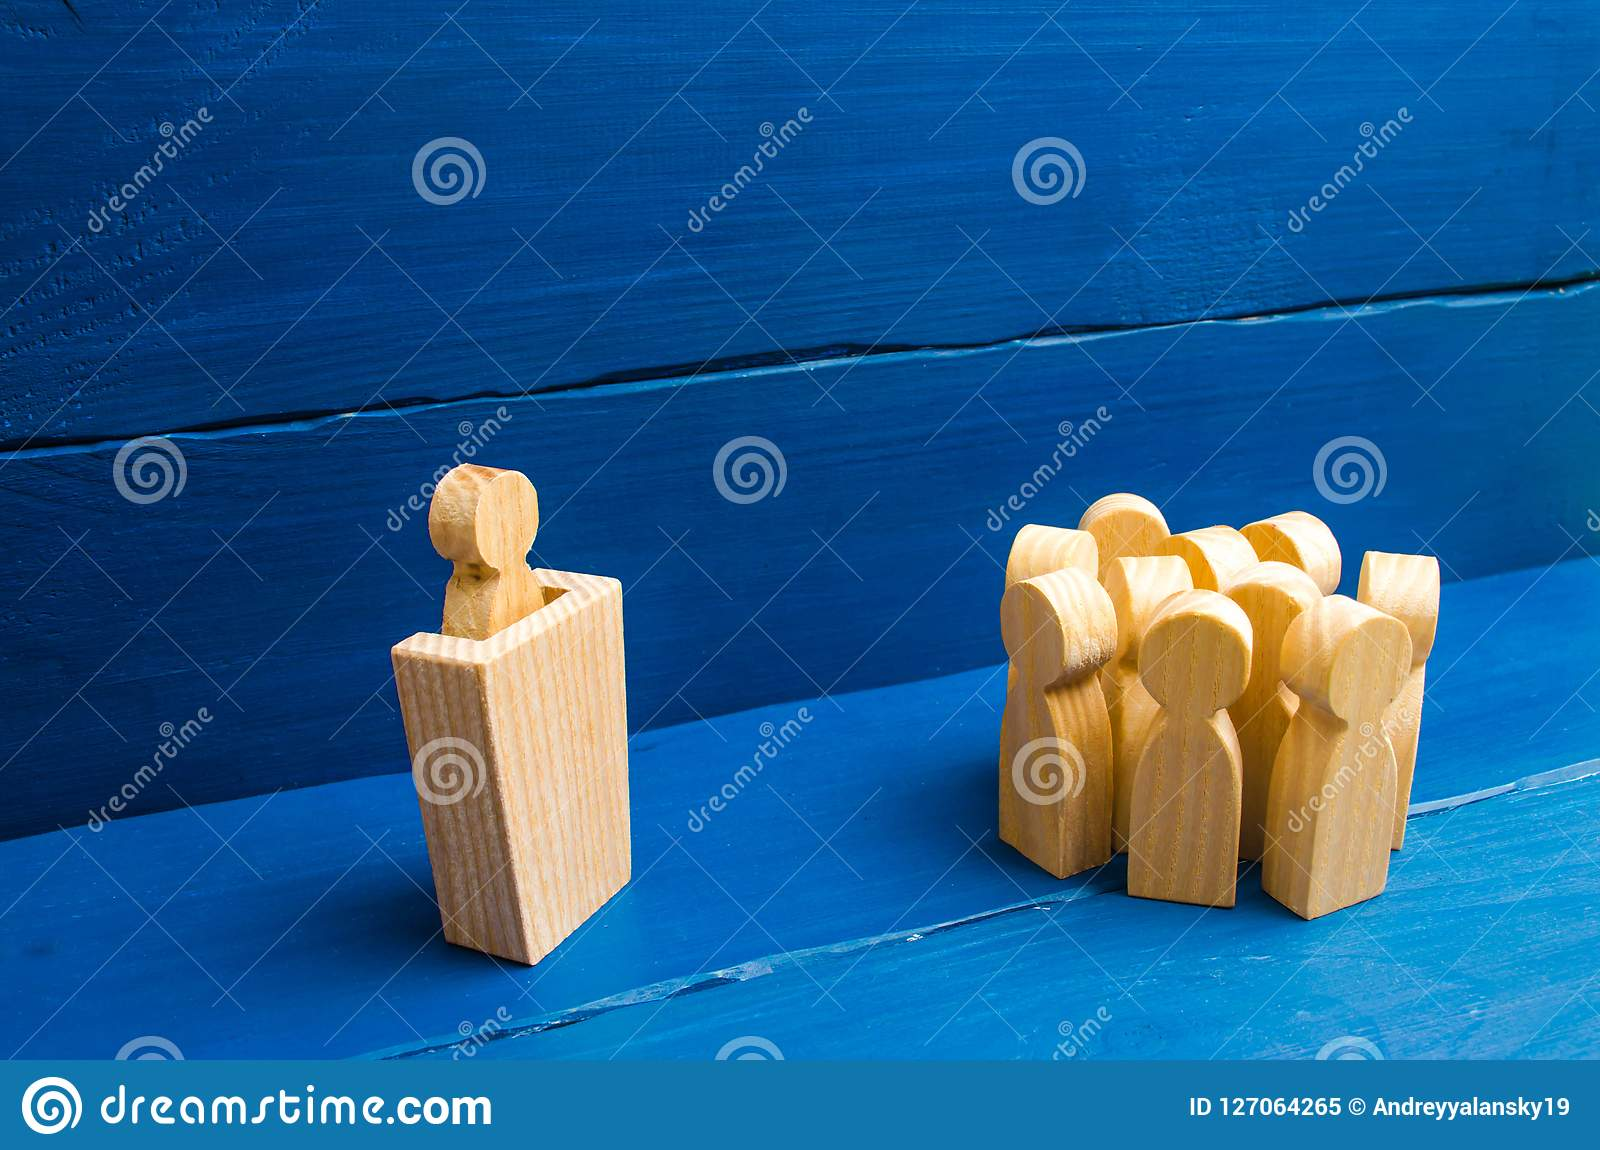 Business concept of leader and leadership qualities, crowd management, political debate and elections. Business management.